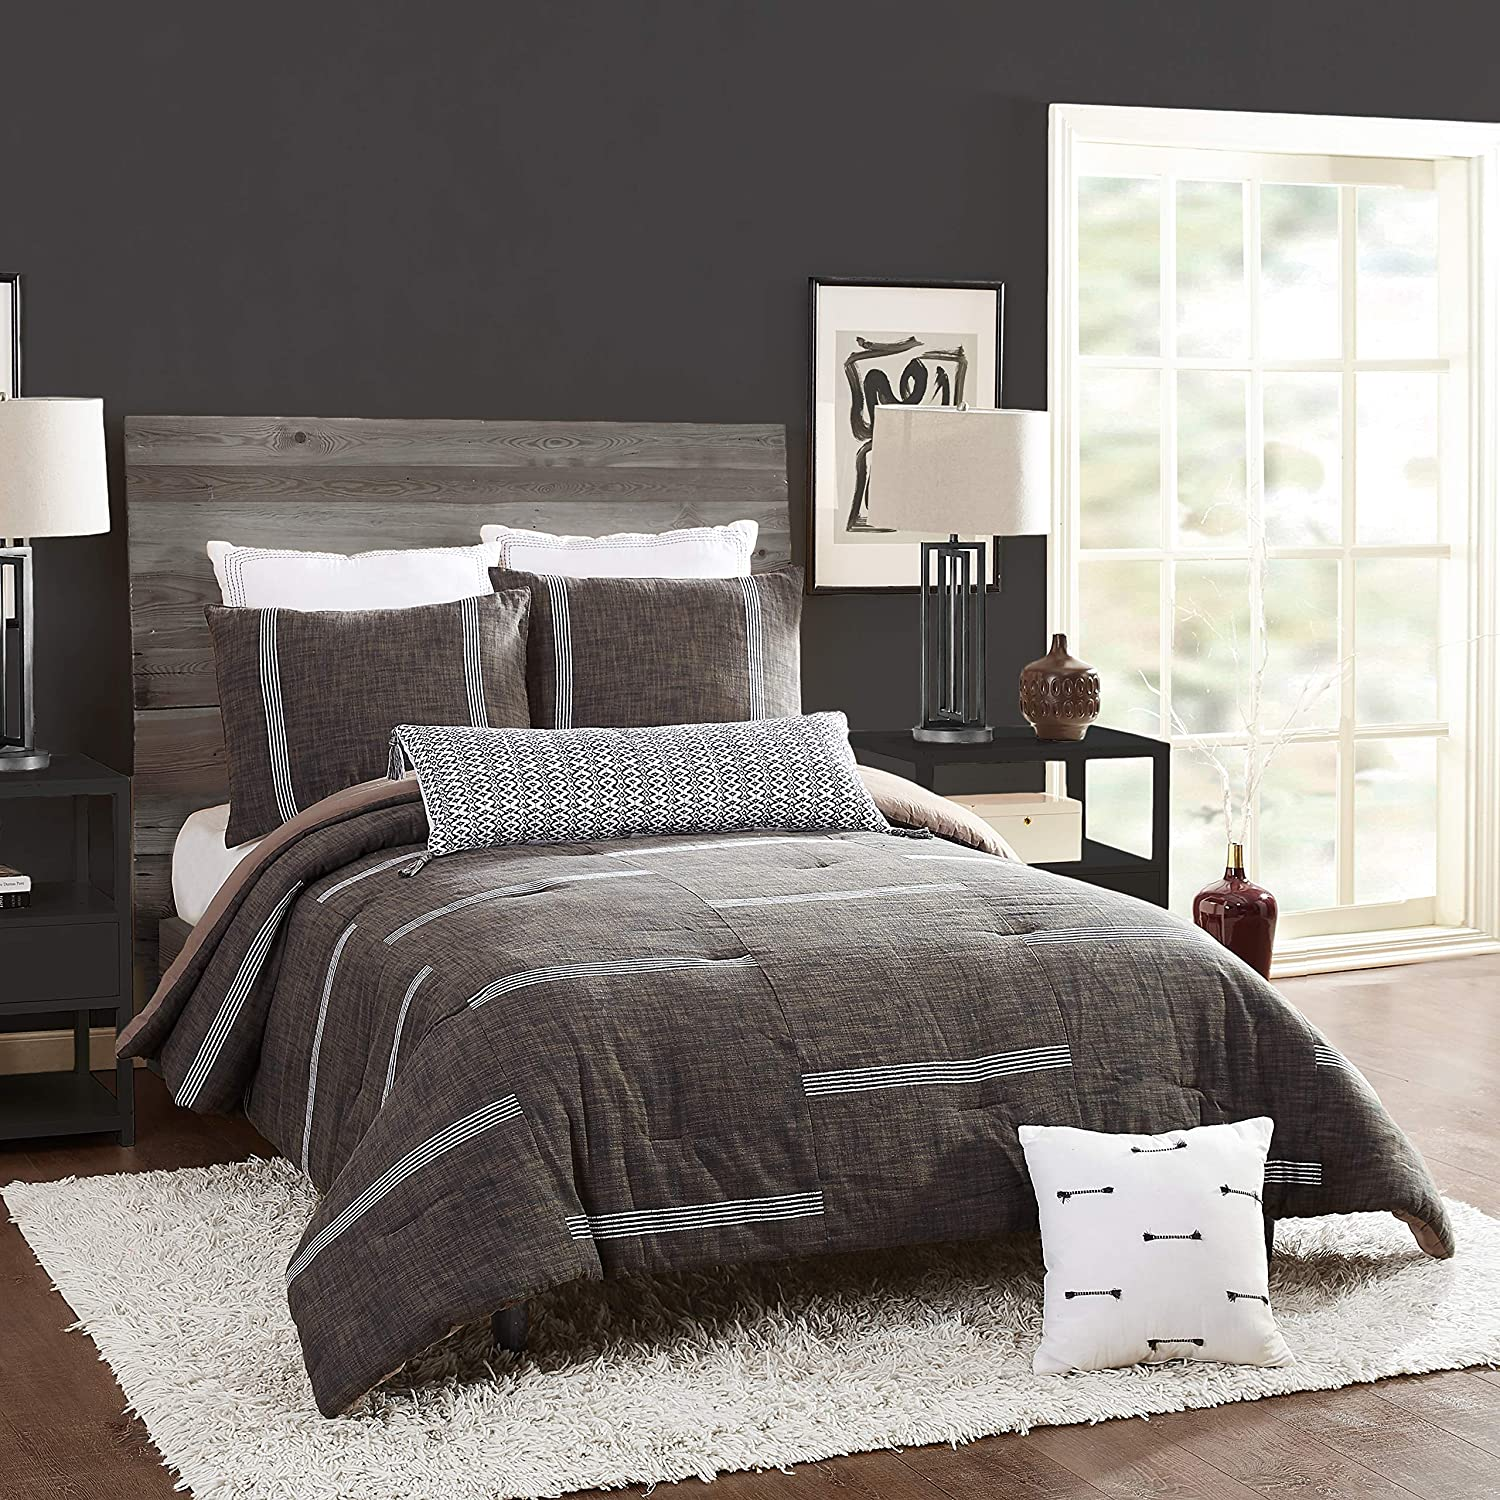 Ayesha Curry Zare Comforter King Limited Special Price Popular standard Gray Set